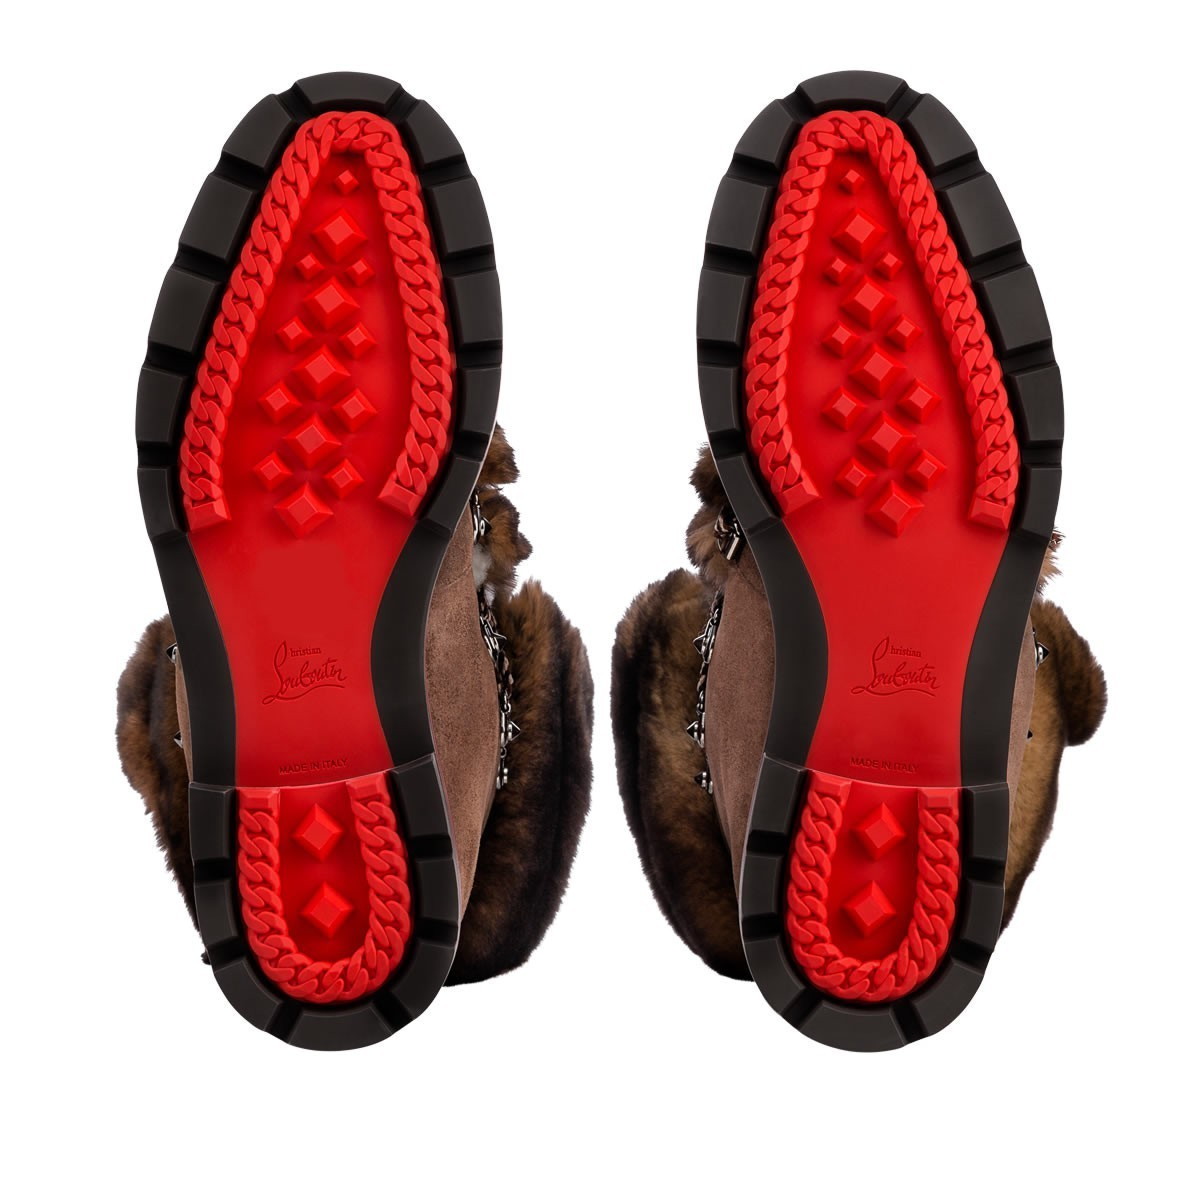 snow shoe christian singles Snow shoe hiking experience a fun and nature adventure at the arlberg in tyrol relaxation in the enchanted, snowy tyrolean environment put the hustle and bustle of daily life behind you and enjoy wonderful hours snowshoe trekking in the arlberg region.